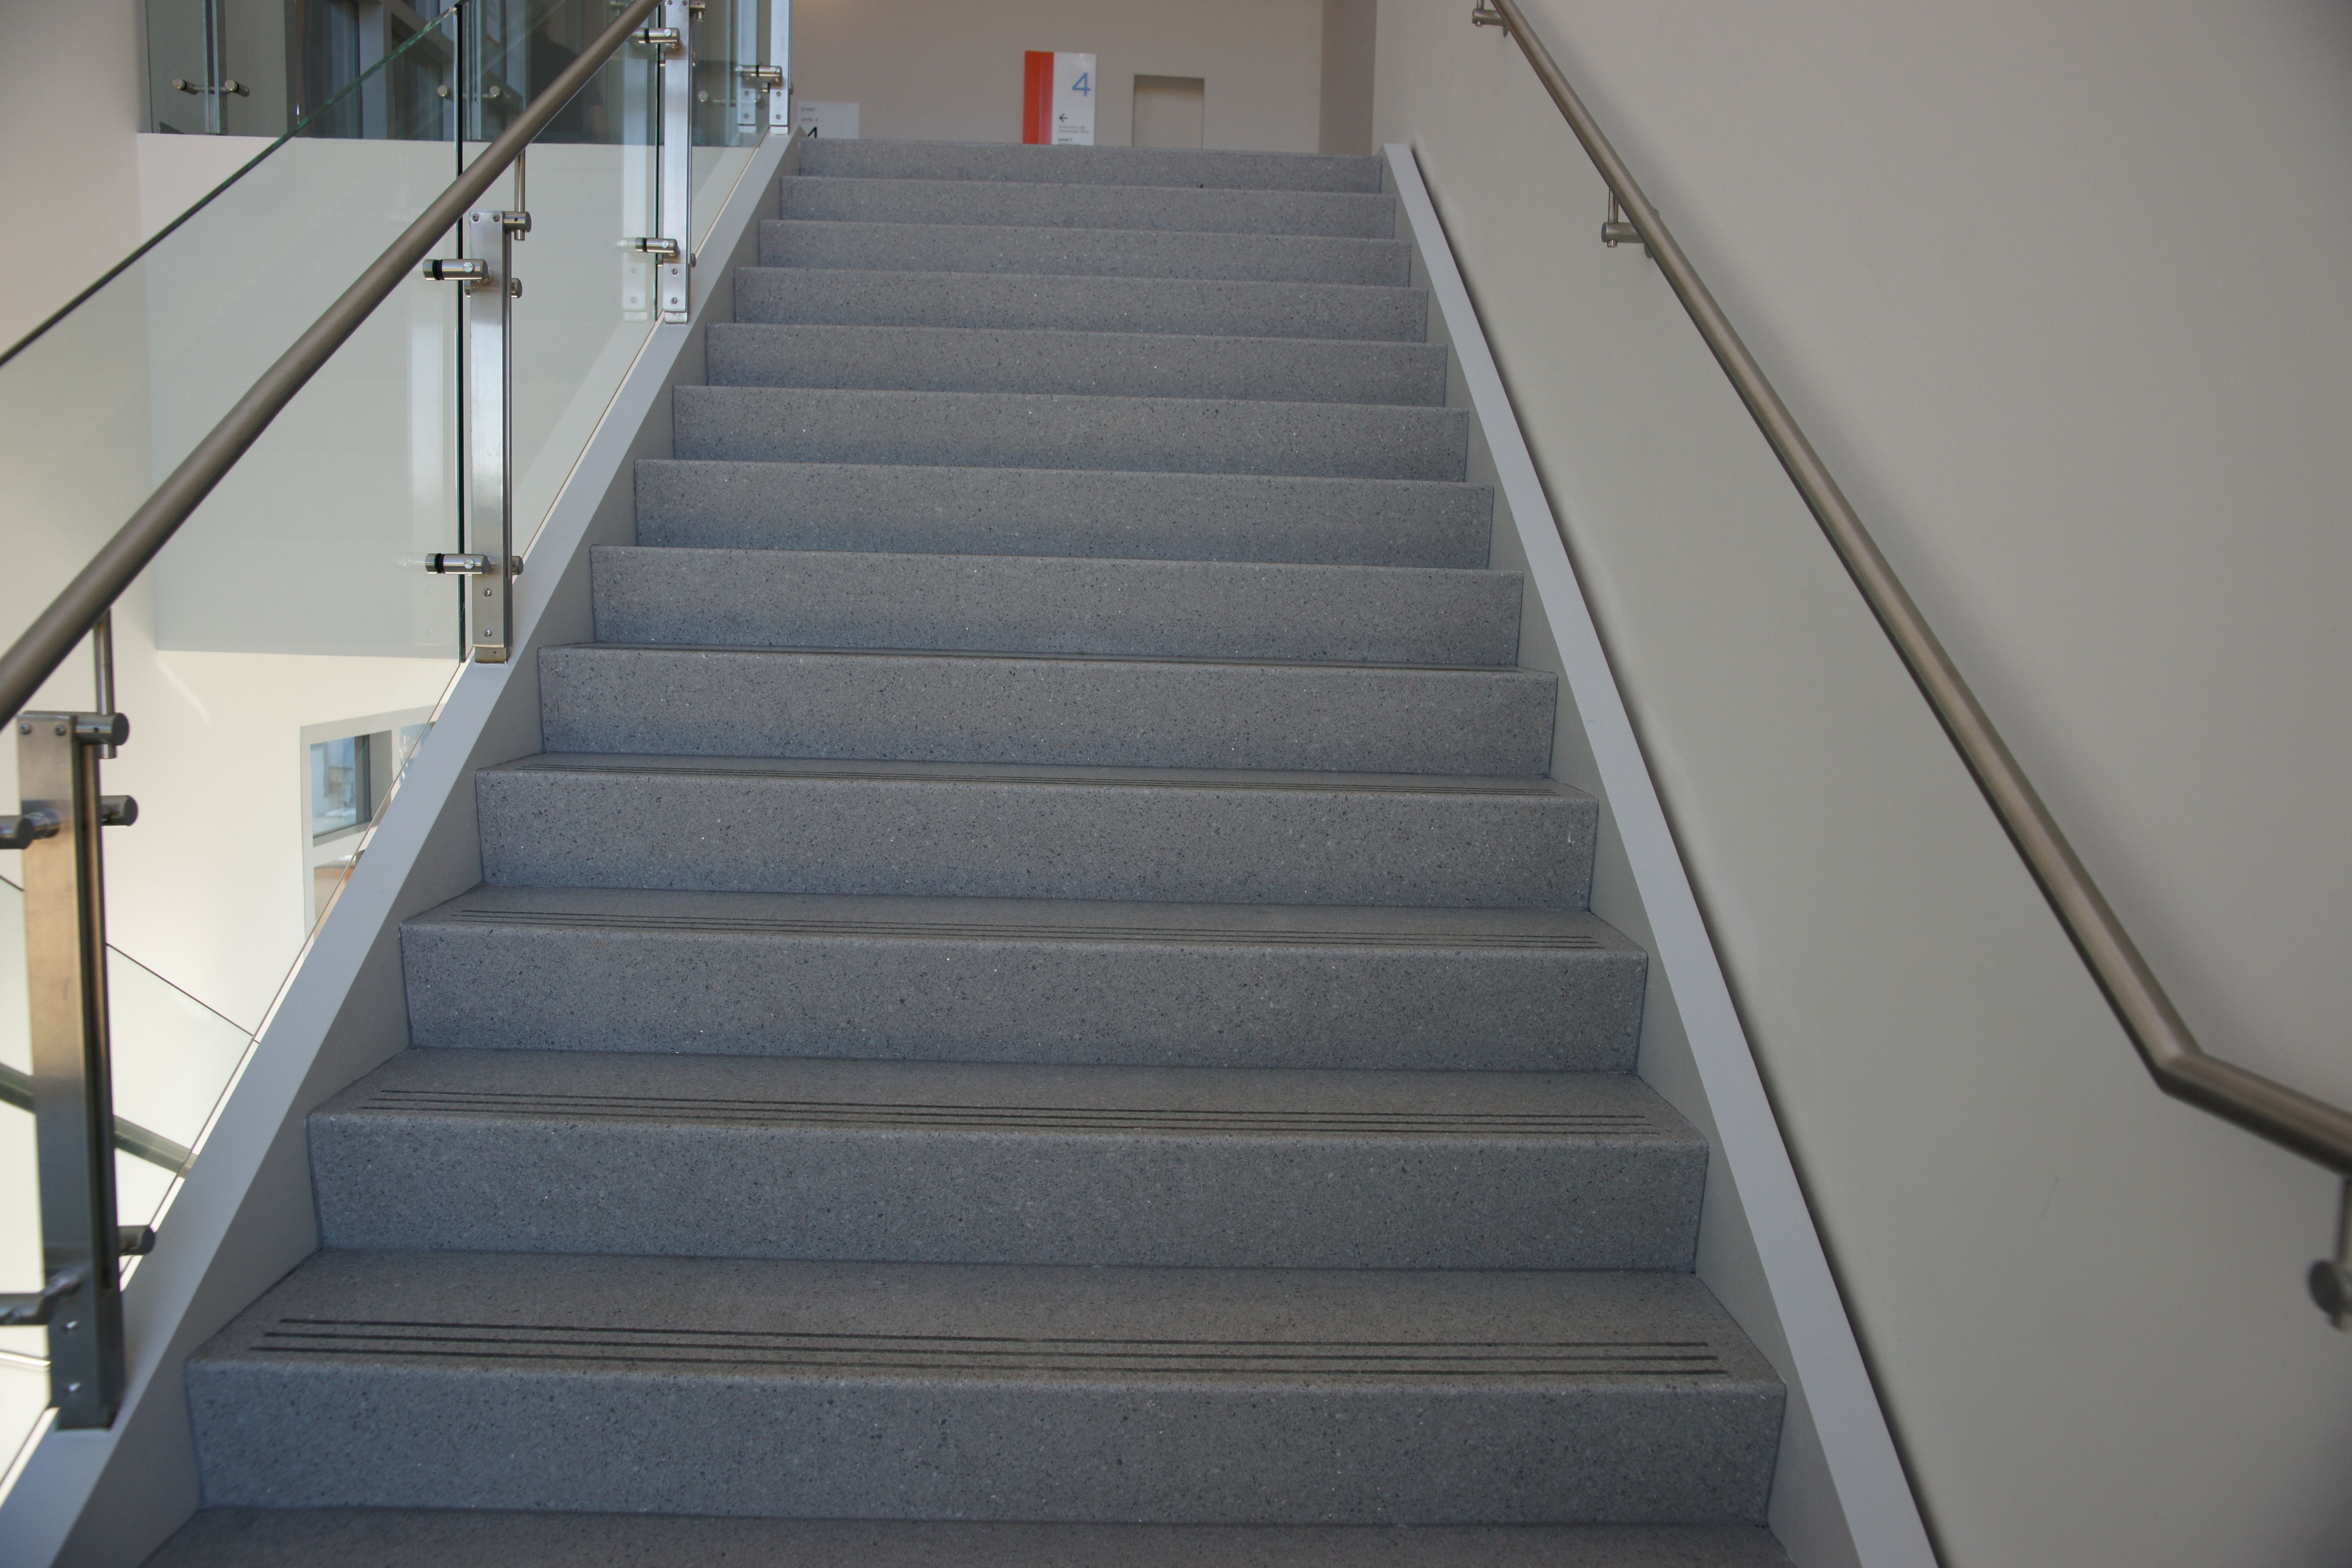 Merveilleux Epoxy Precast Terrazzo Stair Treads And Riser Combos Www.terrazzco.com # Staircase #terrazzo #precast #stairs #treads